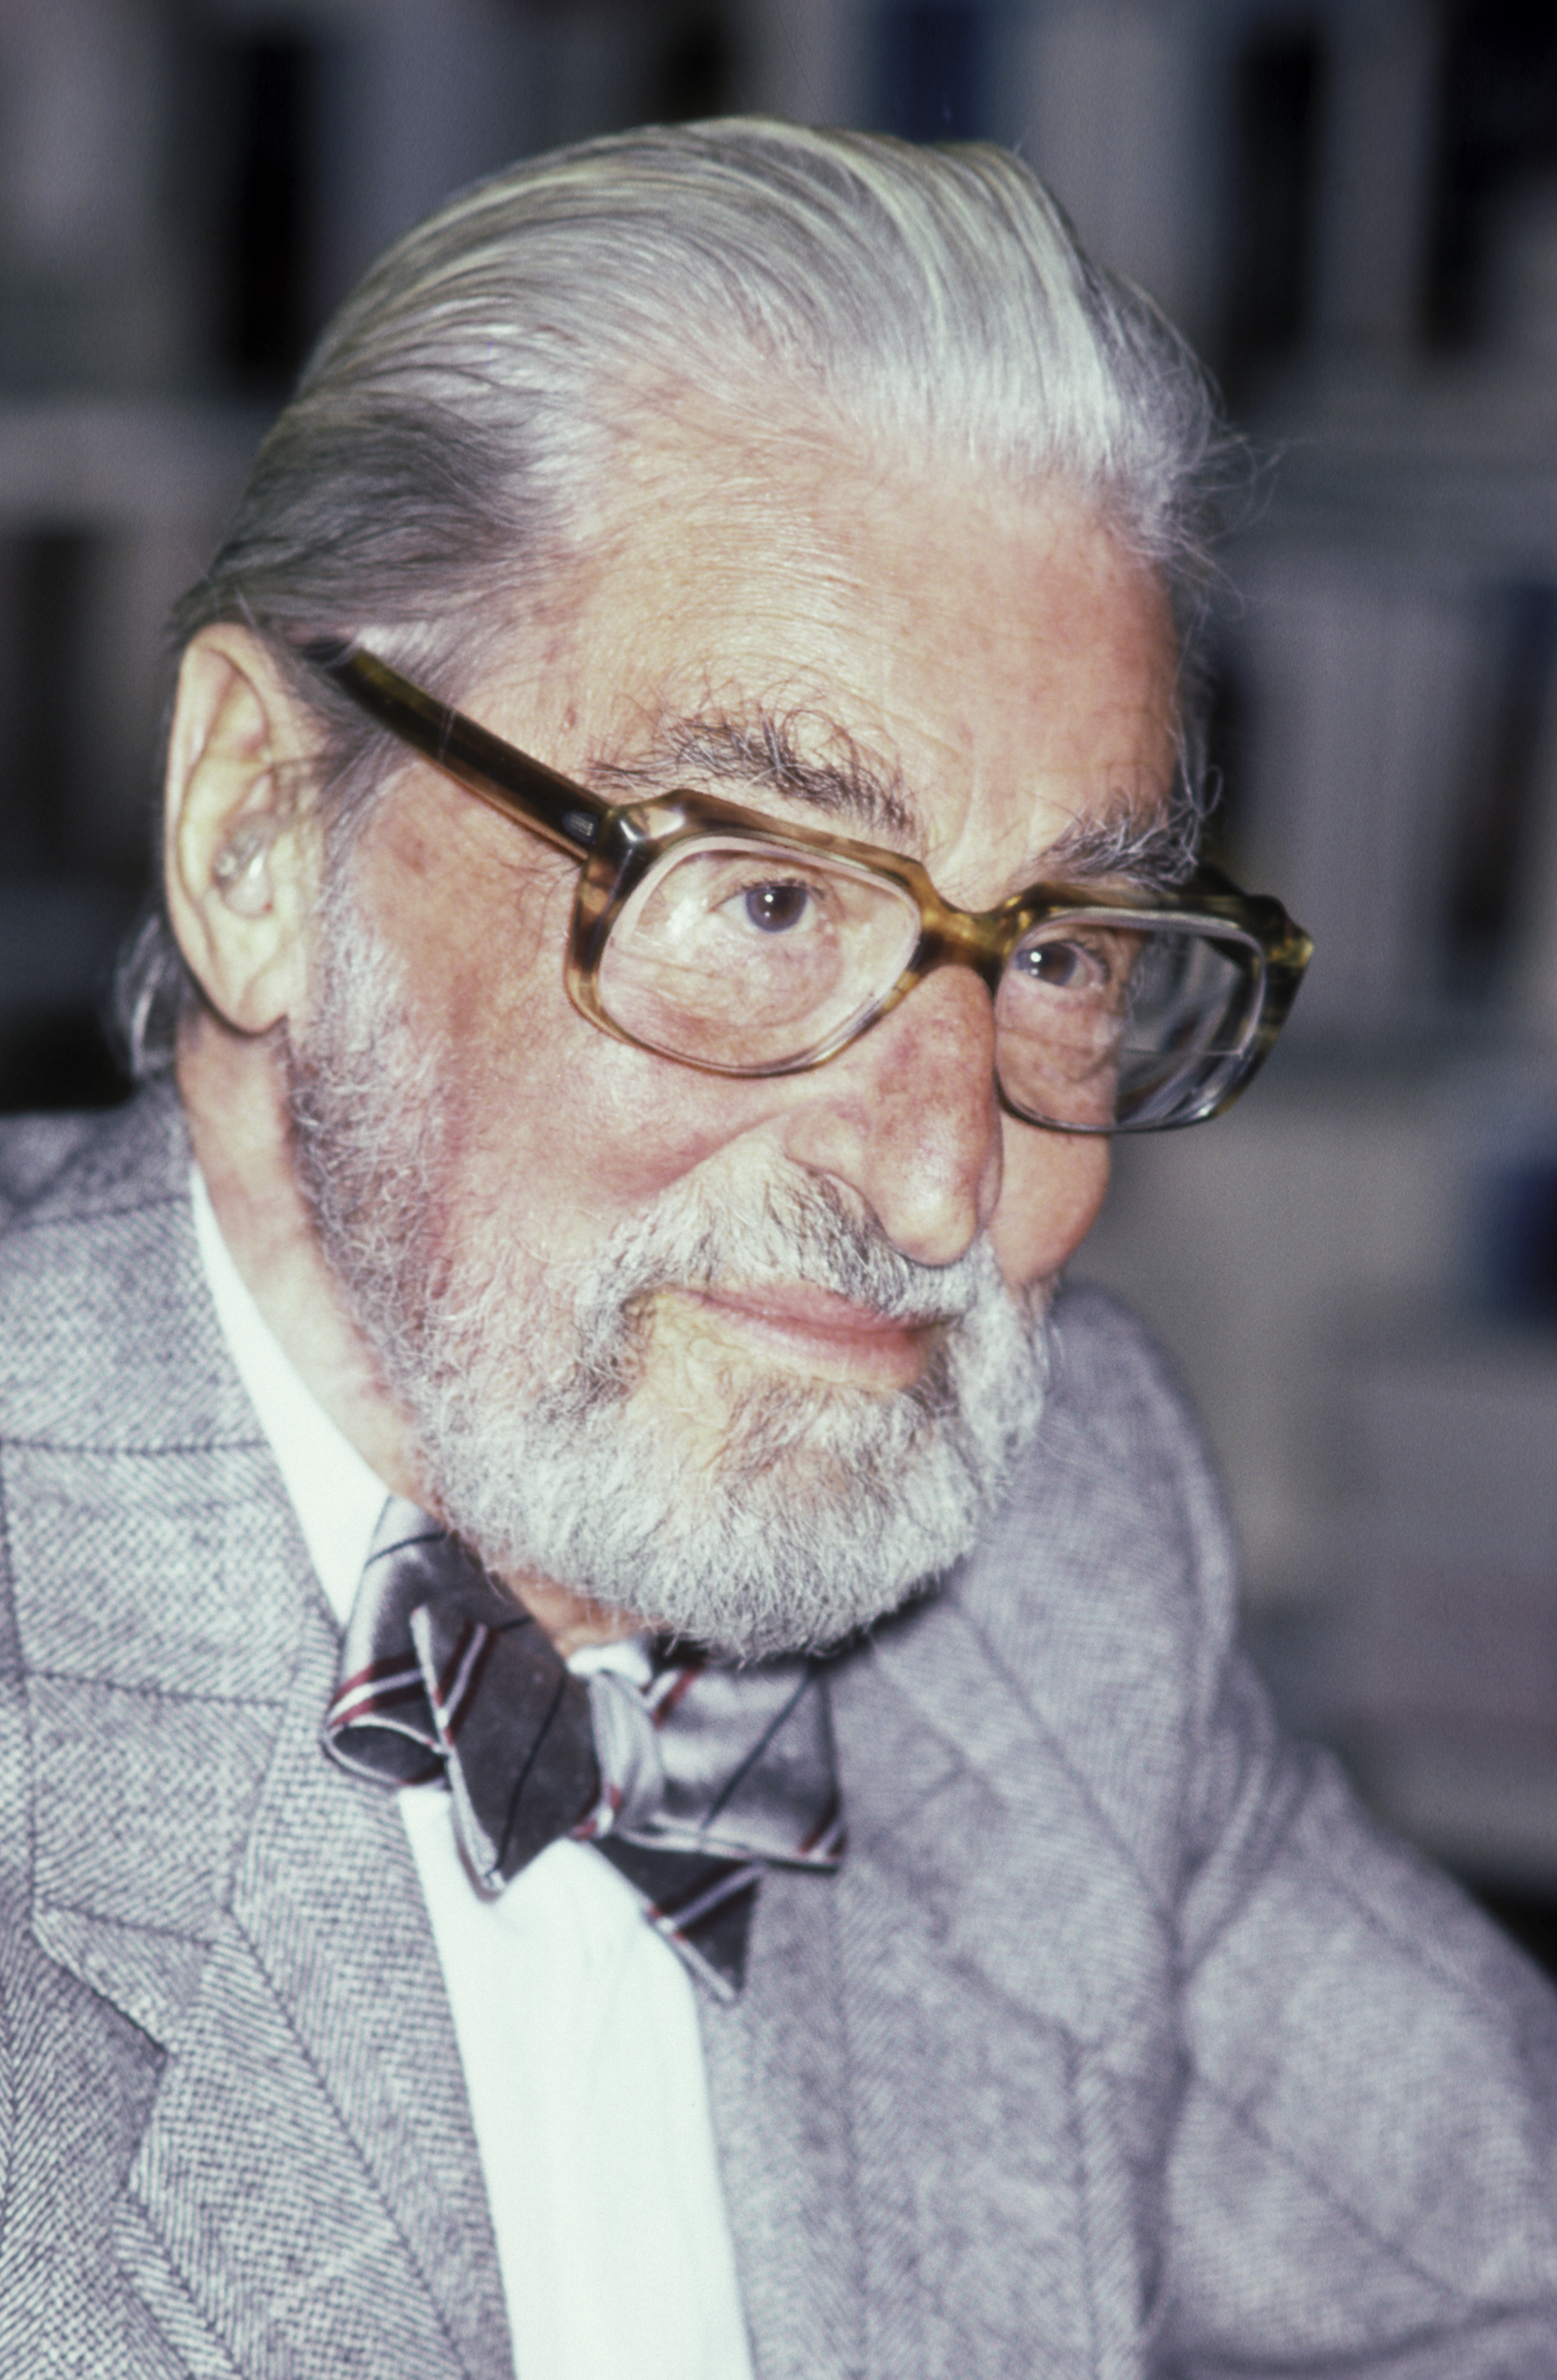 Theodor Geisel at Dr. Suess In-Store Appearance in Yonkers, N.Y. on March 1, 1986.